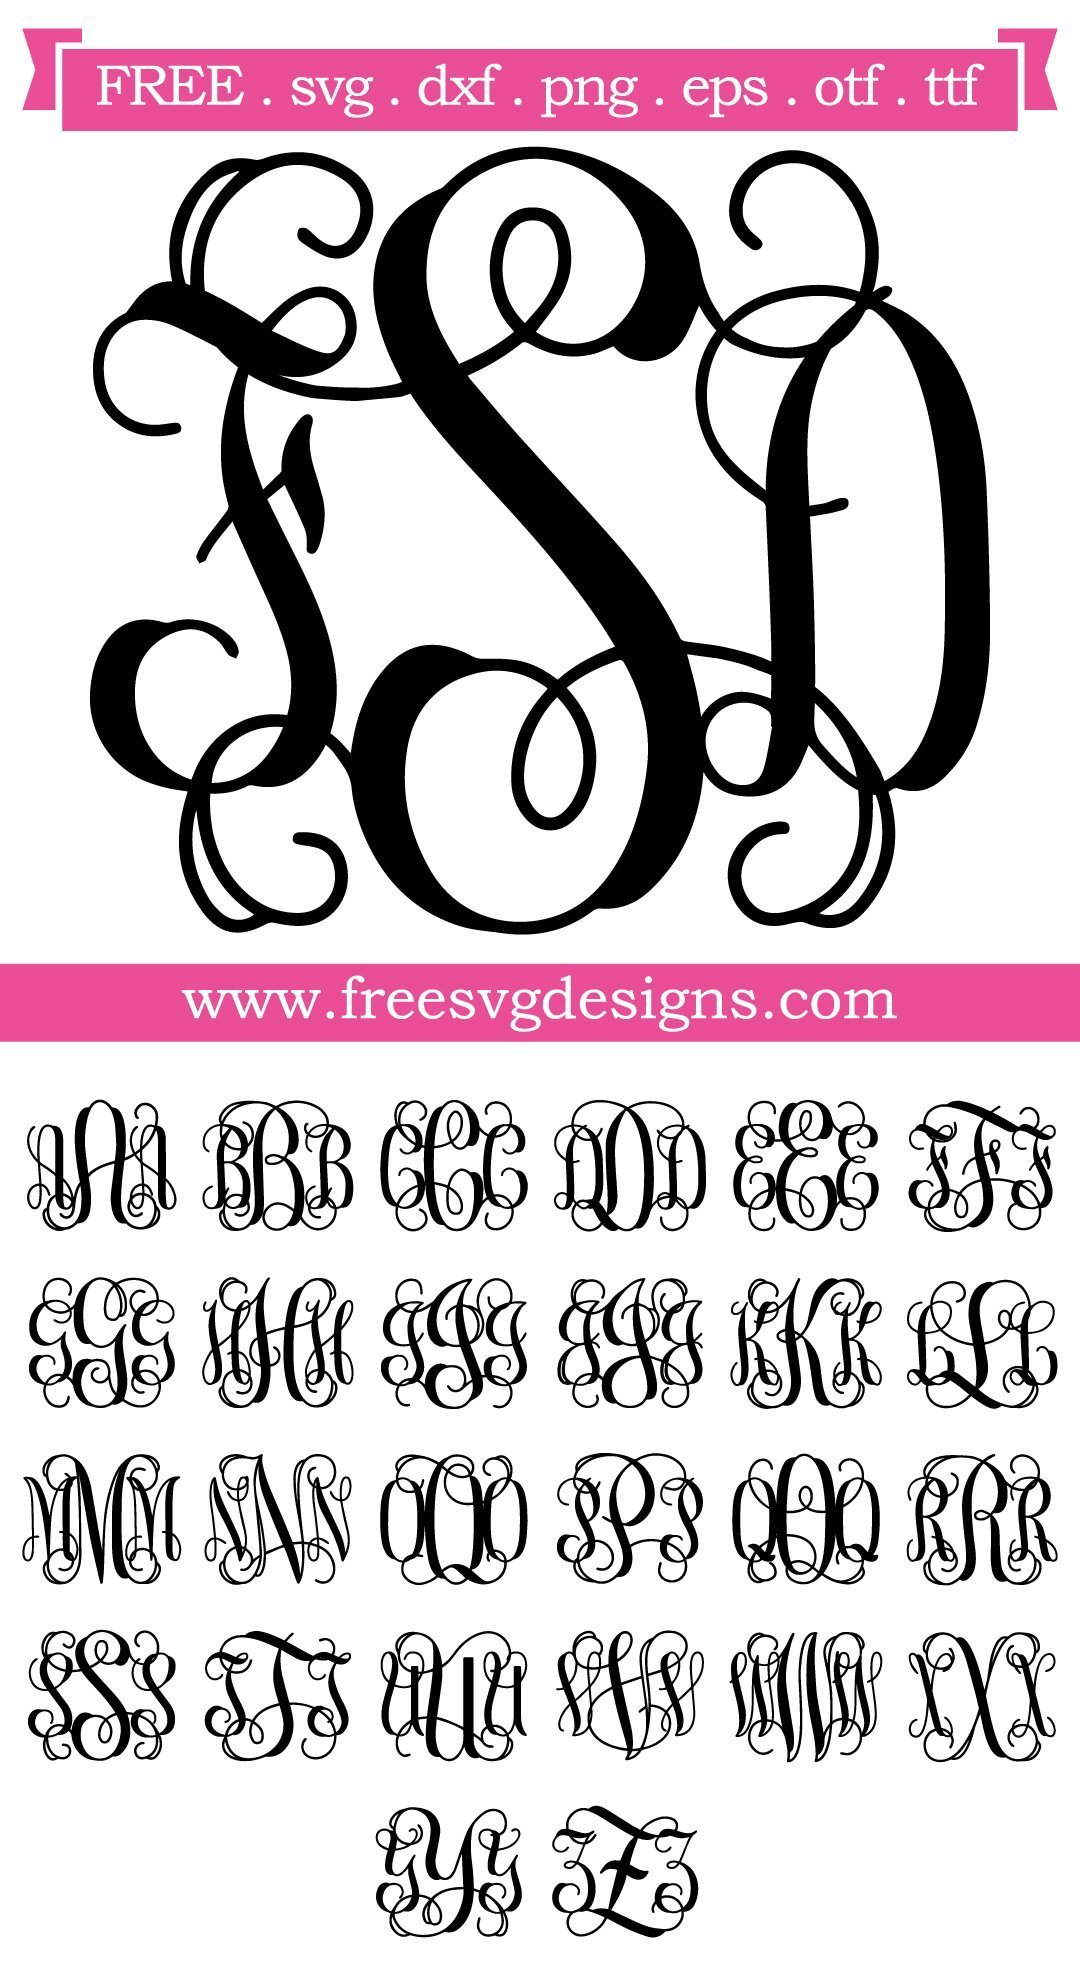 Download 22+ Free Svg Monogram Designs Pictures Free SVG files ...